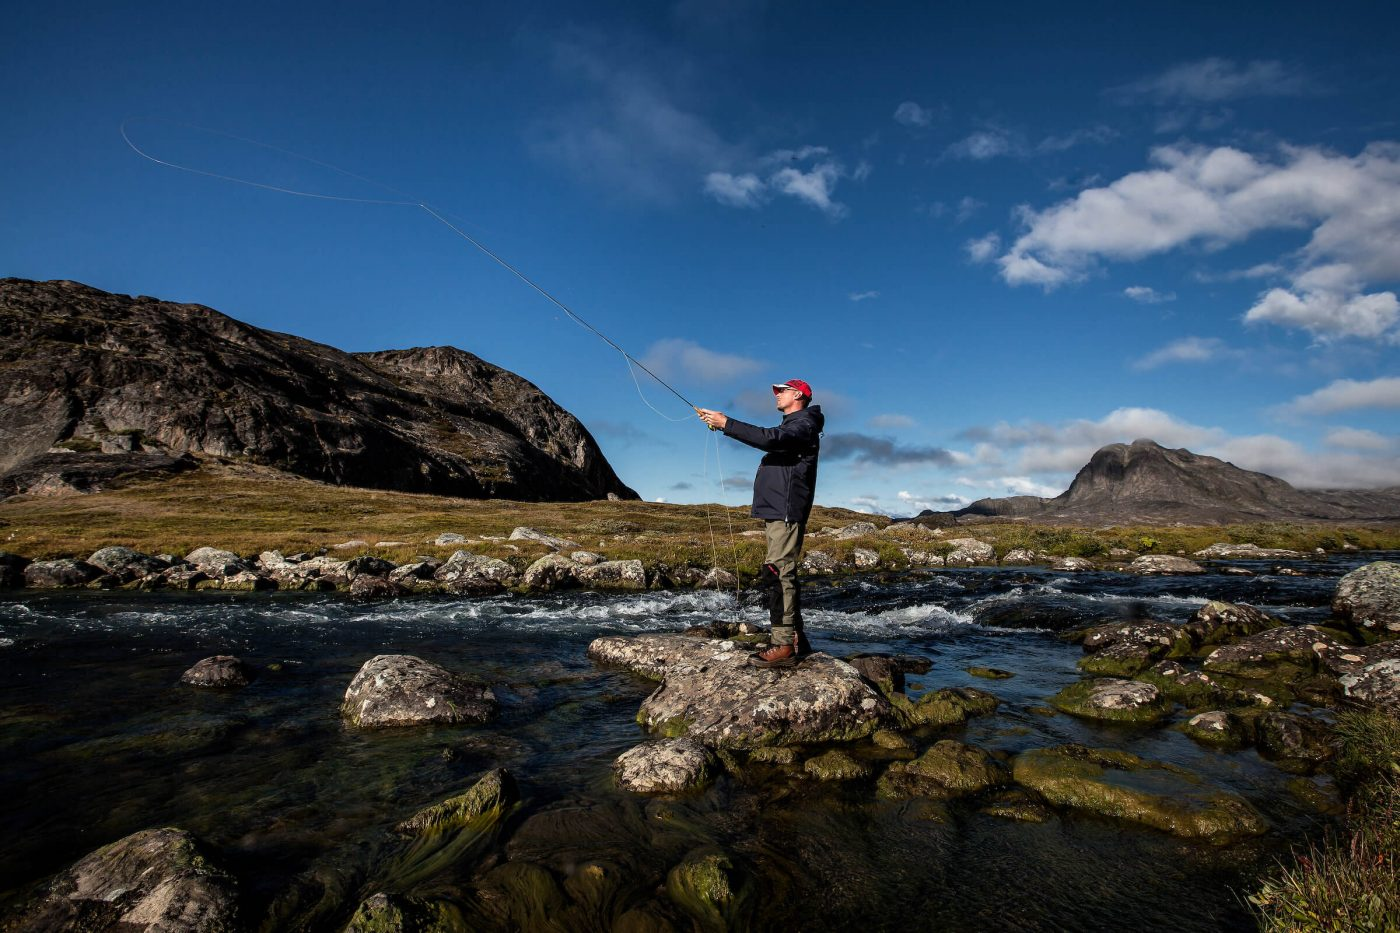 Fly fishing on the lower Erfalik river in Greenland. Photo by Mads Pihl